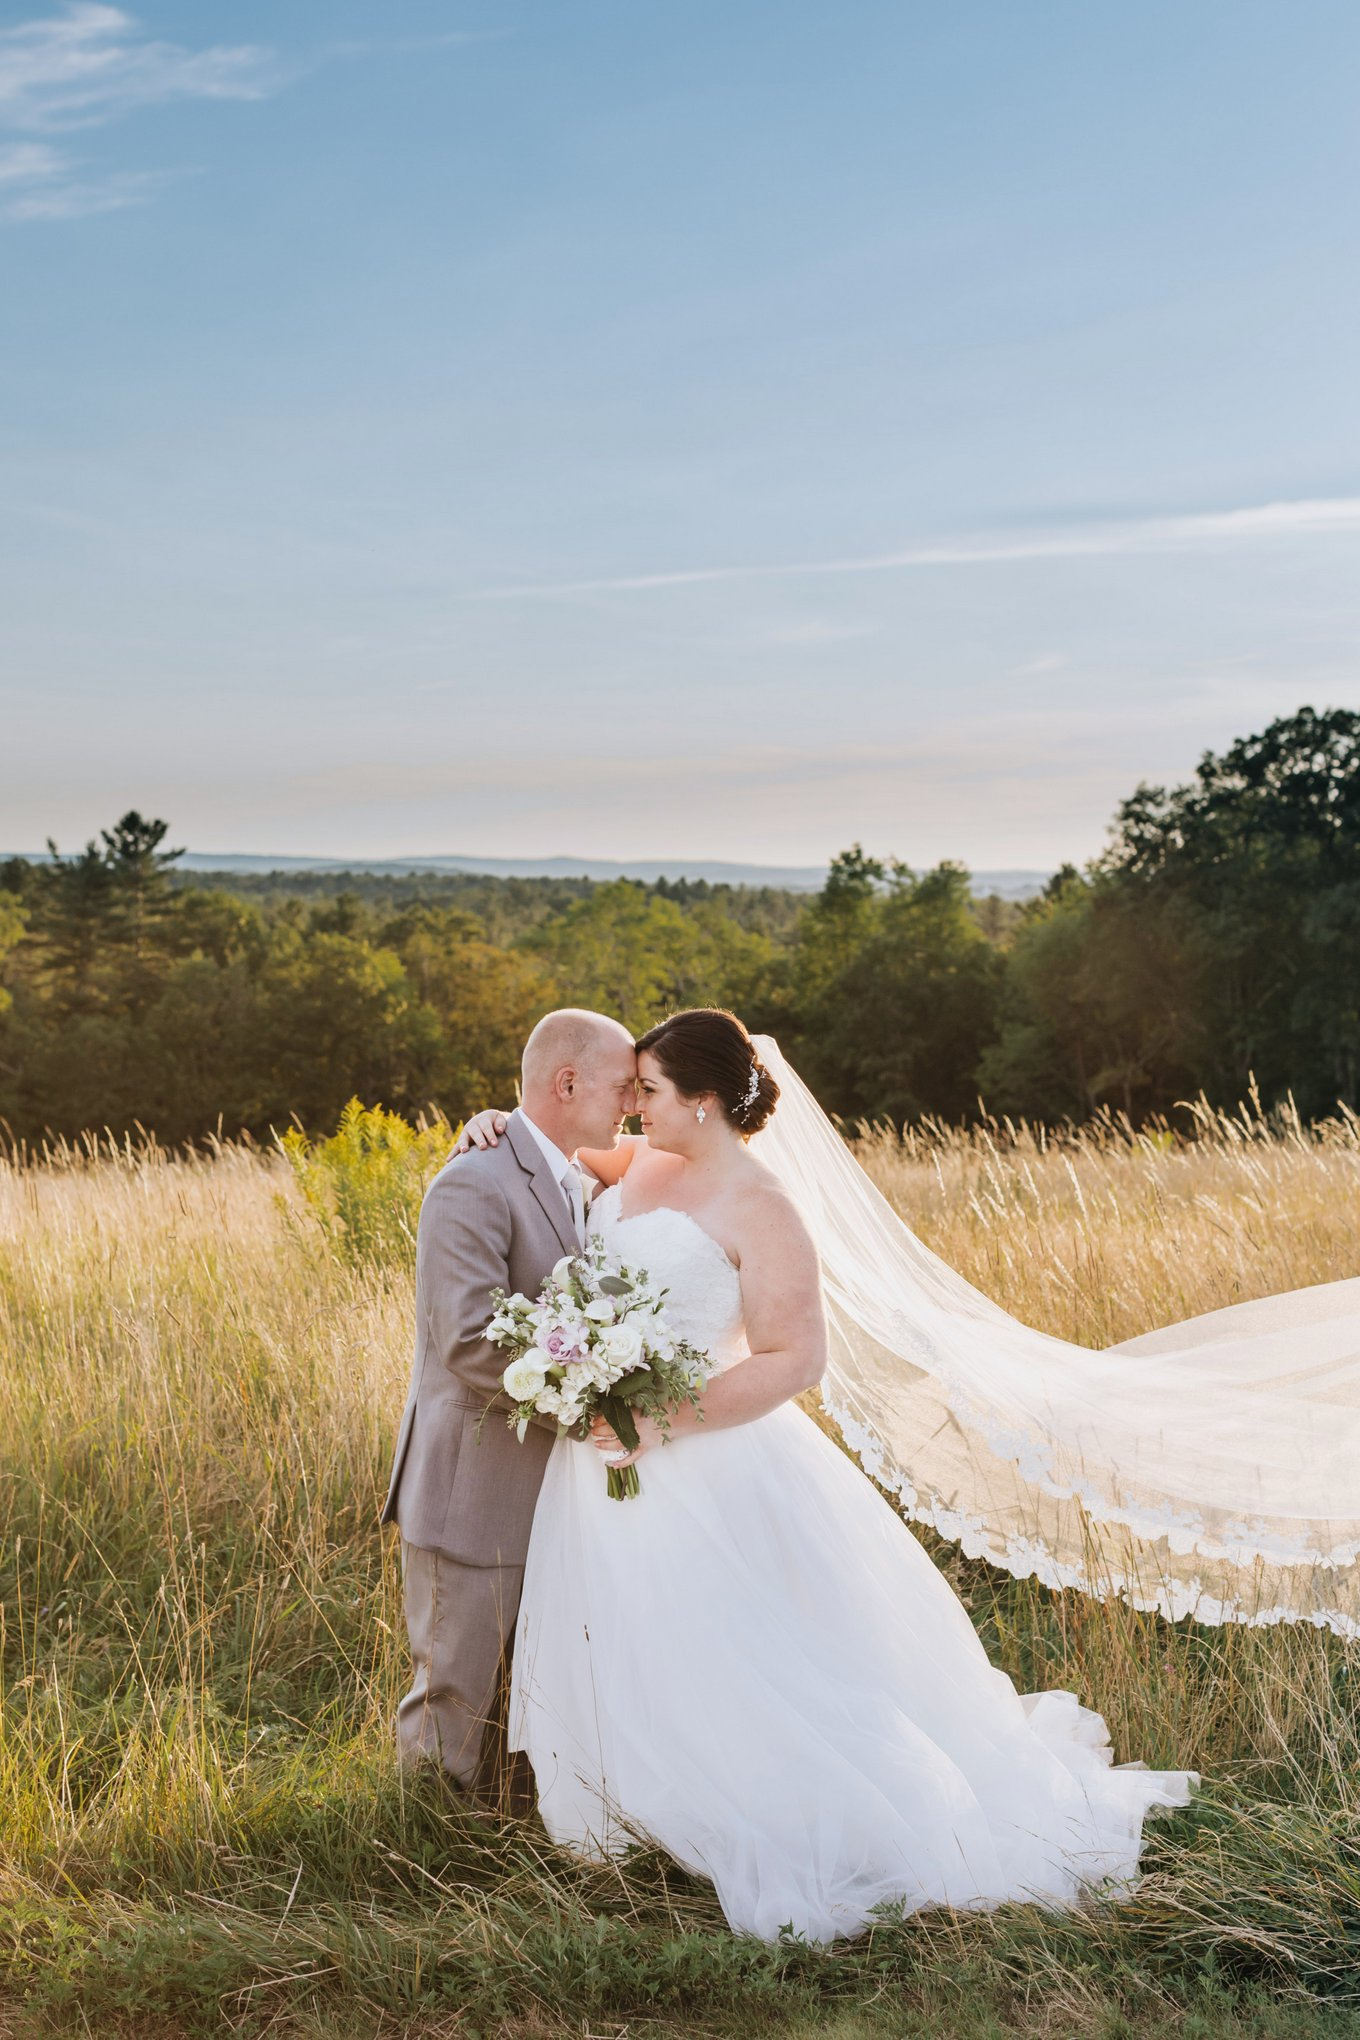 Harrington_Farm_Wedding_Photographer-40.jpg